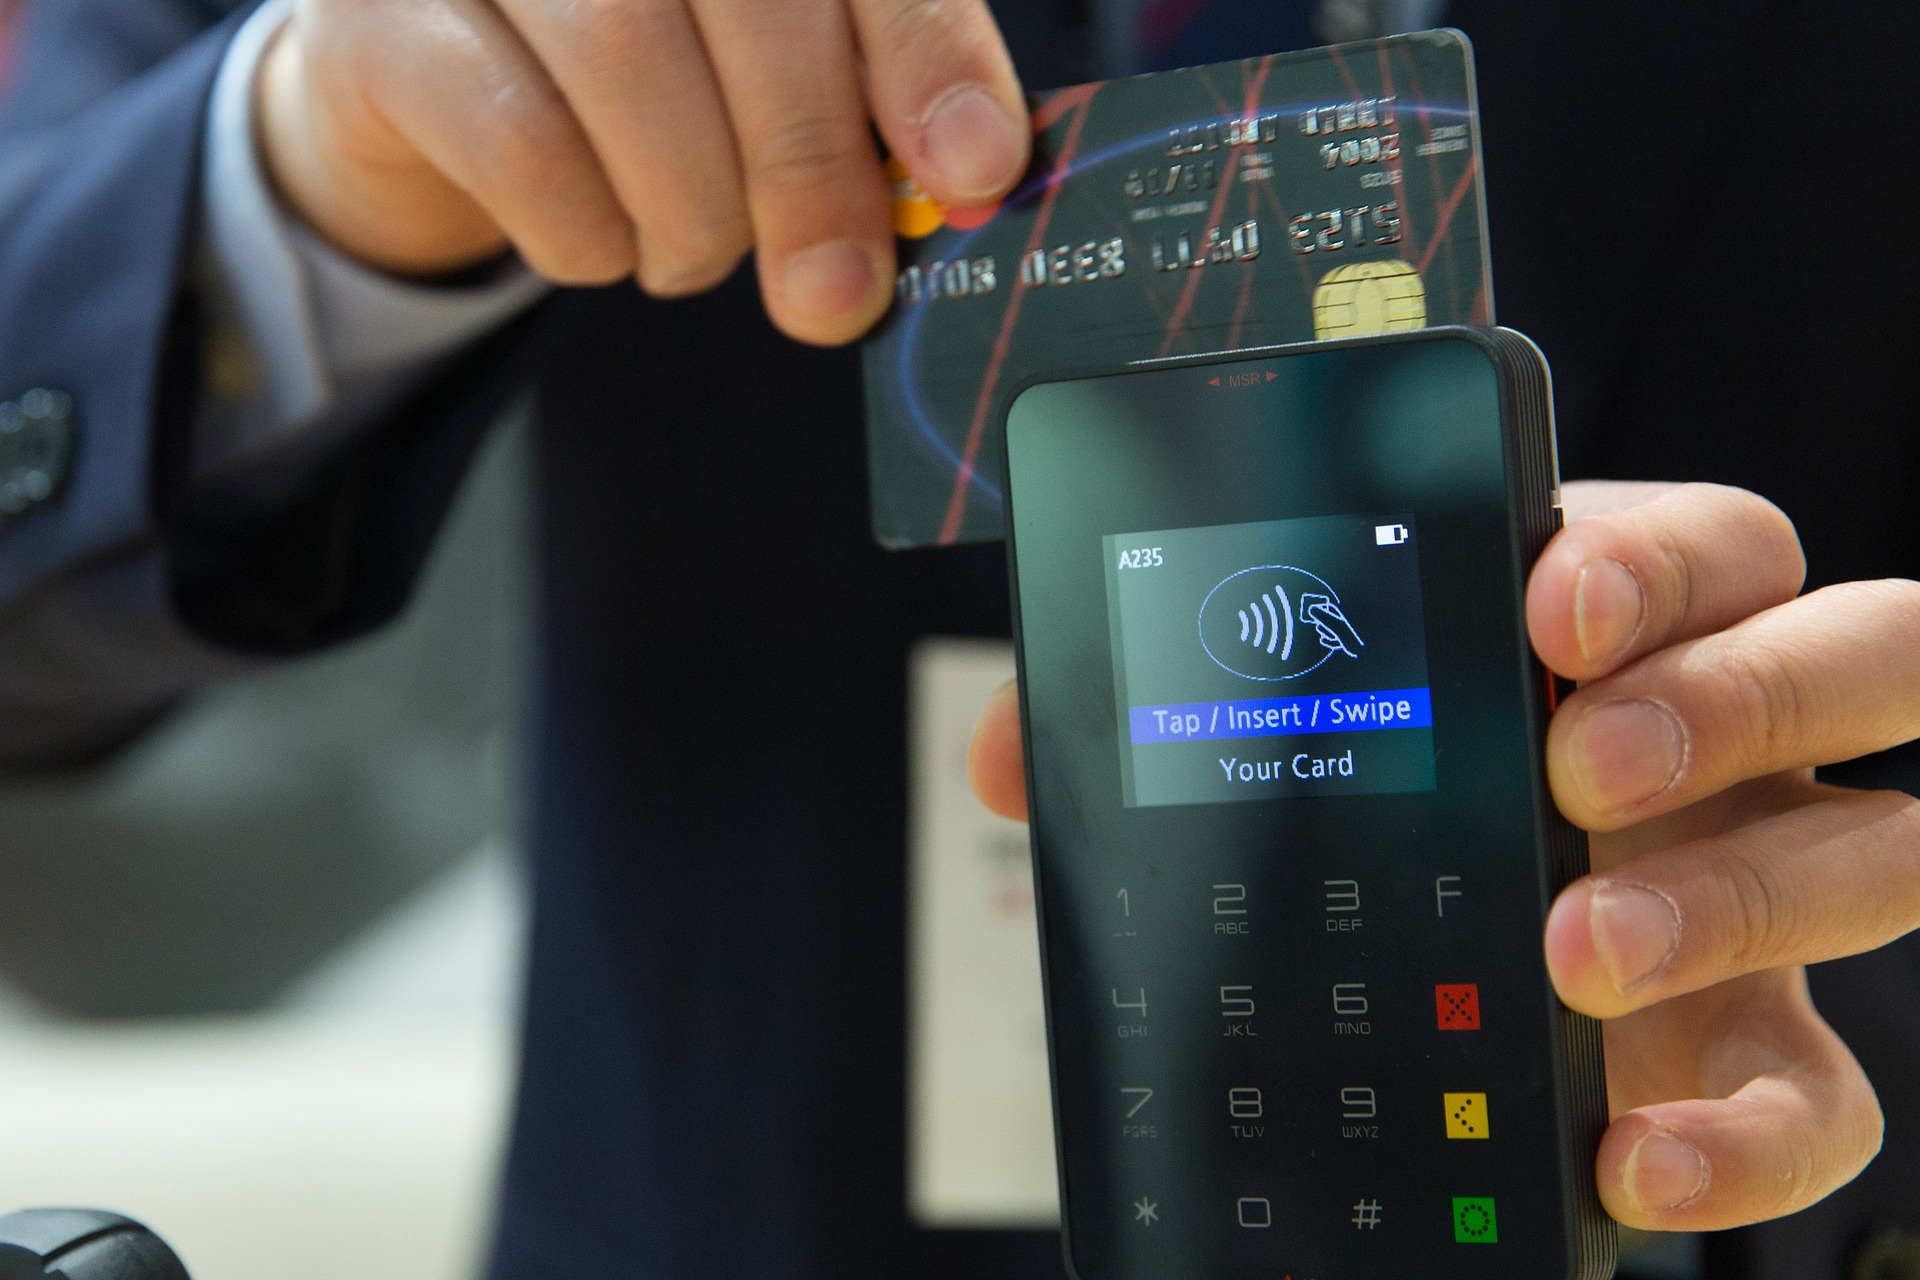 Any time you swipe a card to make a purchase or utilize a self-checkout kiosk, a POS (point of sale) system is responsible for handling the intricacies of your transaction in the background.